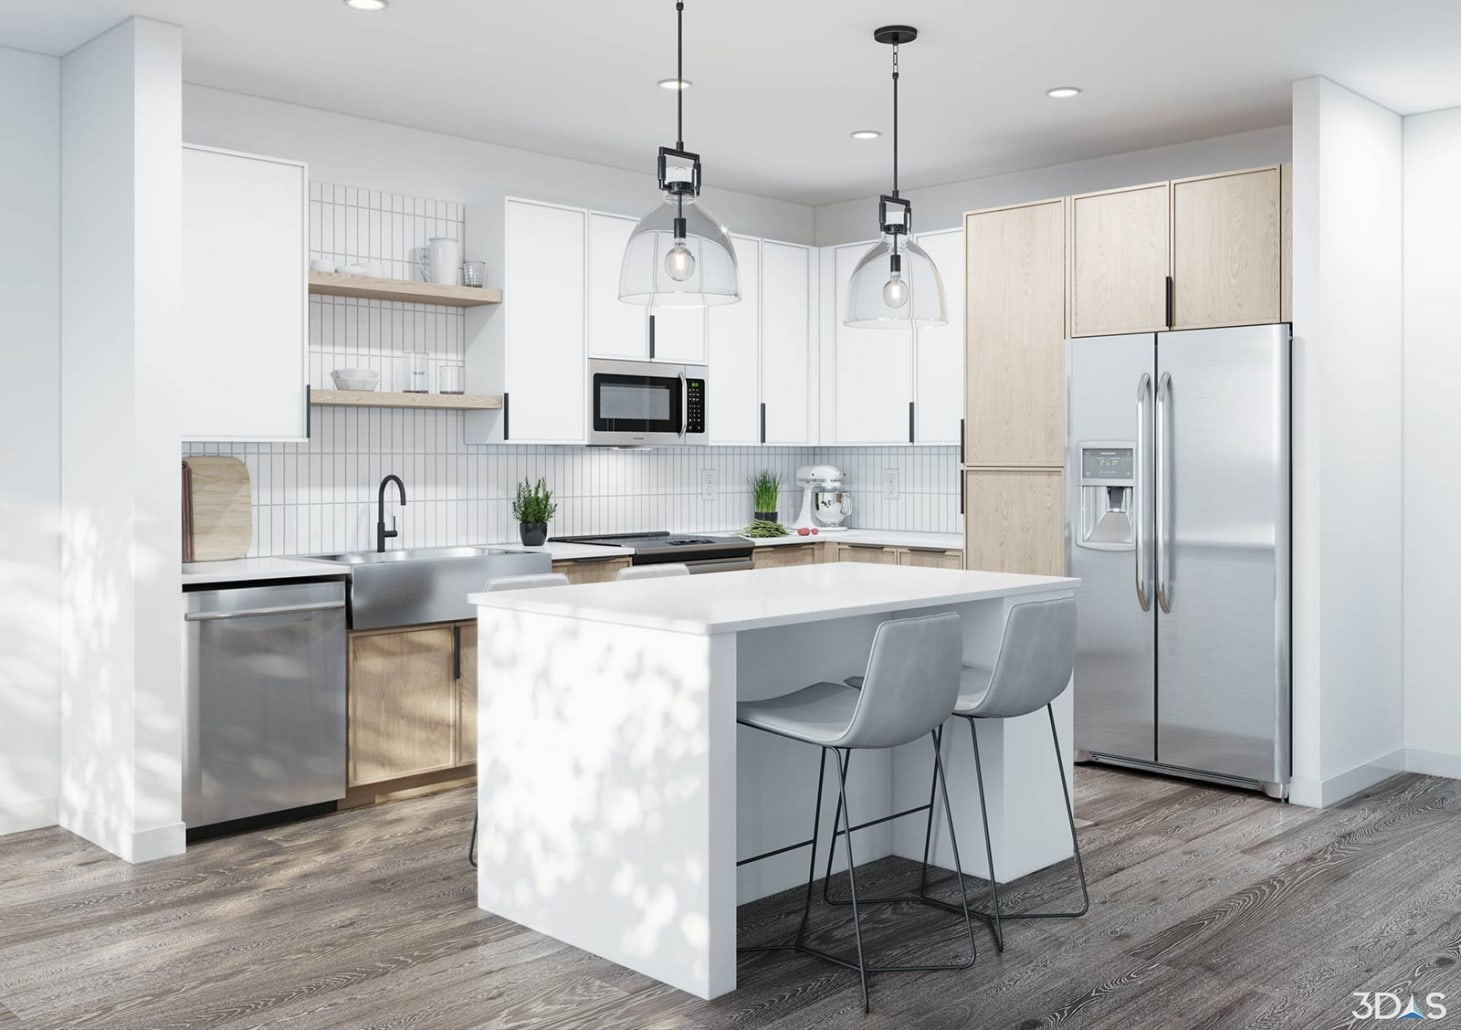 3D kitchen concept rendering for Alta Health Village in Orlando, Florida